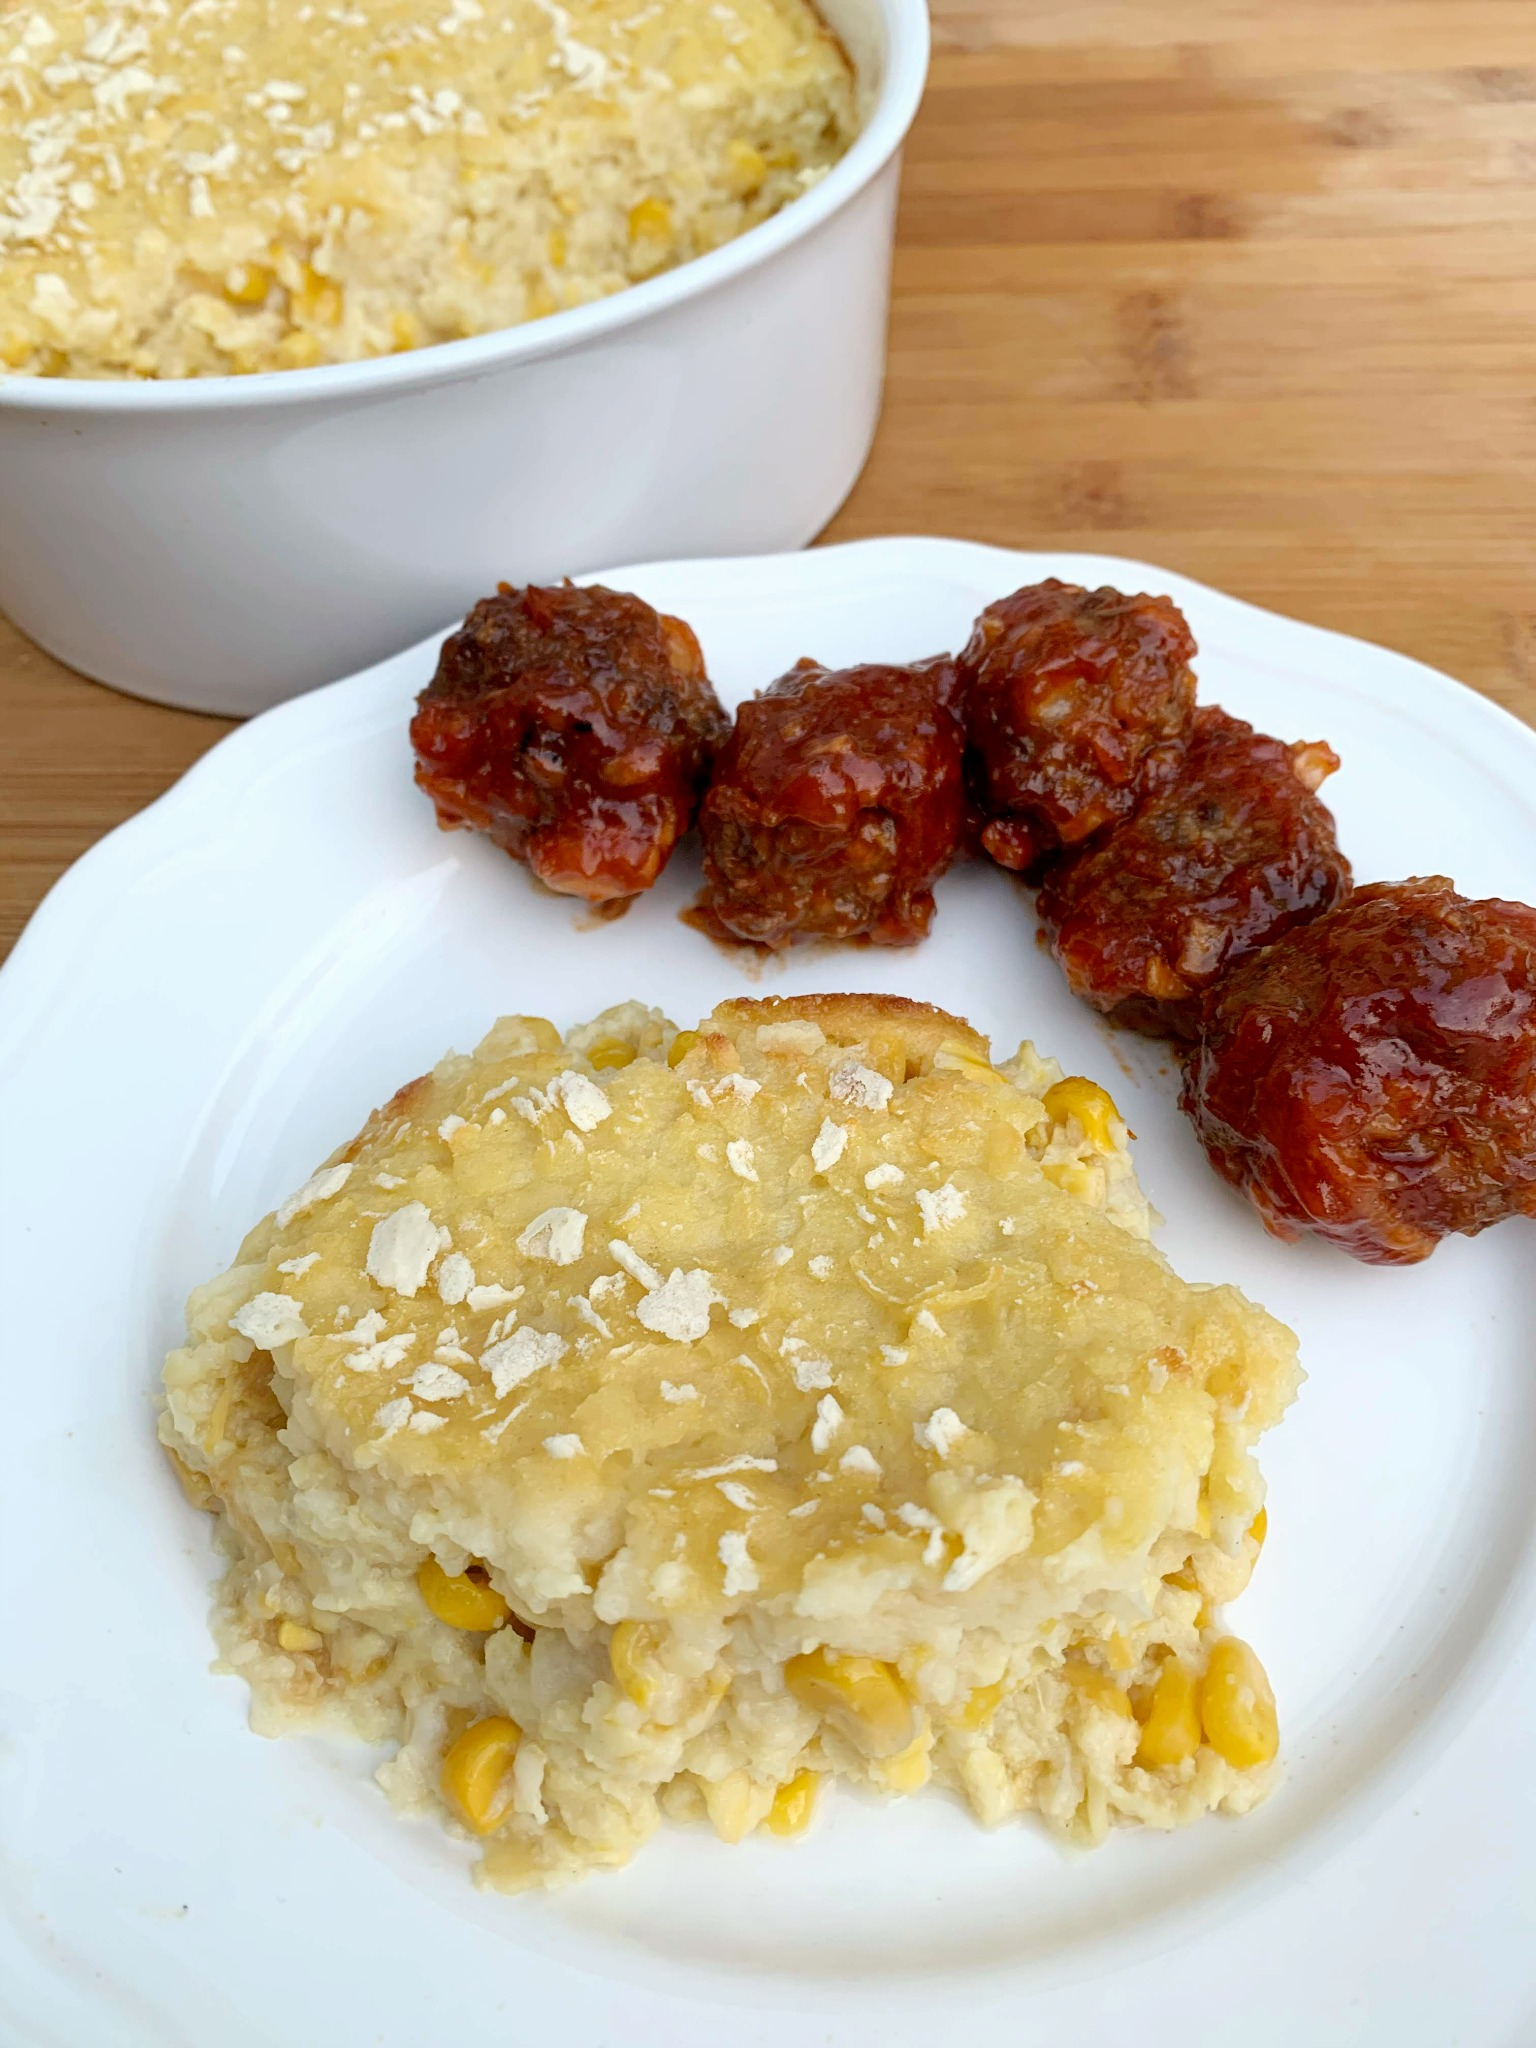 a serving of scalloped corn on a plate with meatballs in the background